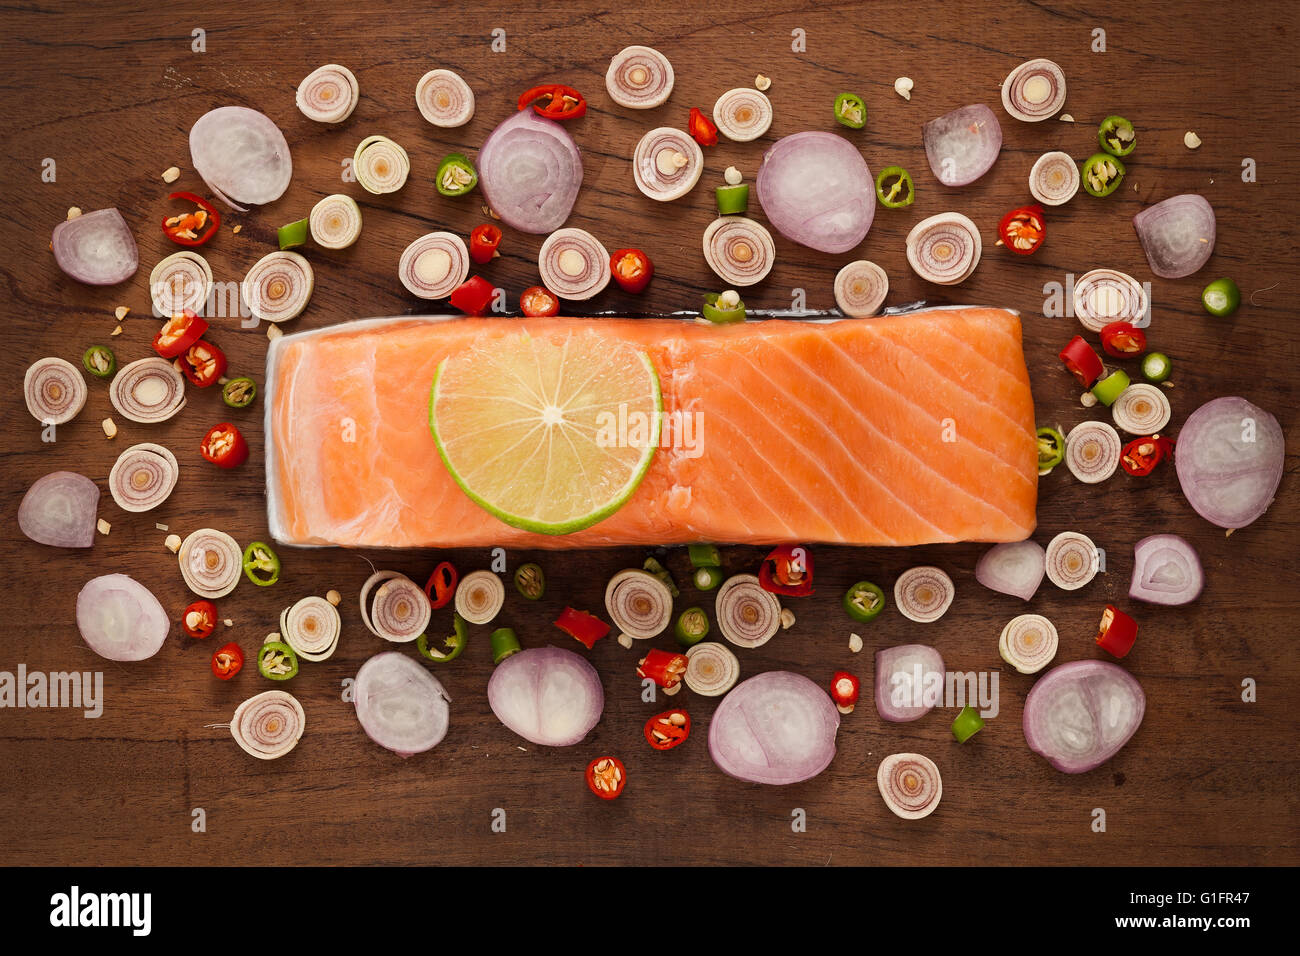 salmon steak spicy food salad ingredient rustic still life lemon lemongrass onion shallot paprika chilli Stock Photo